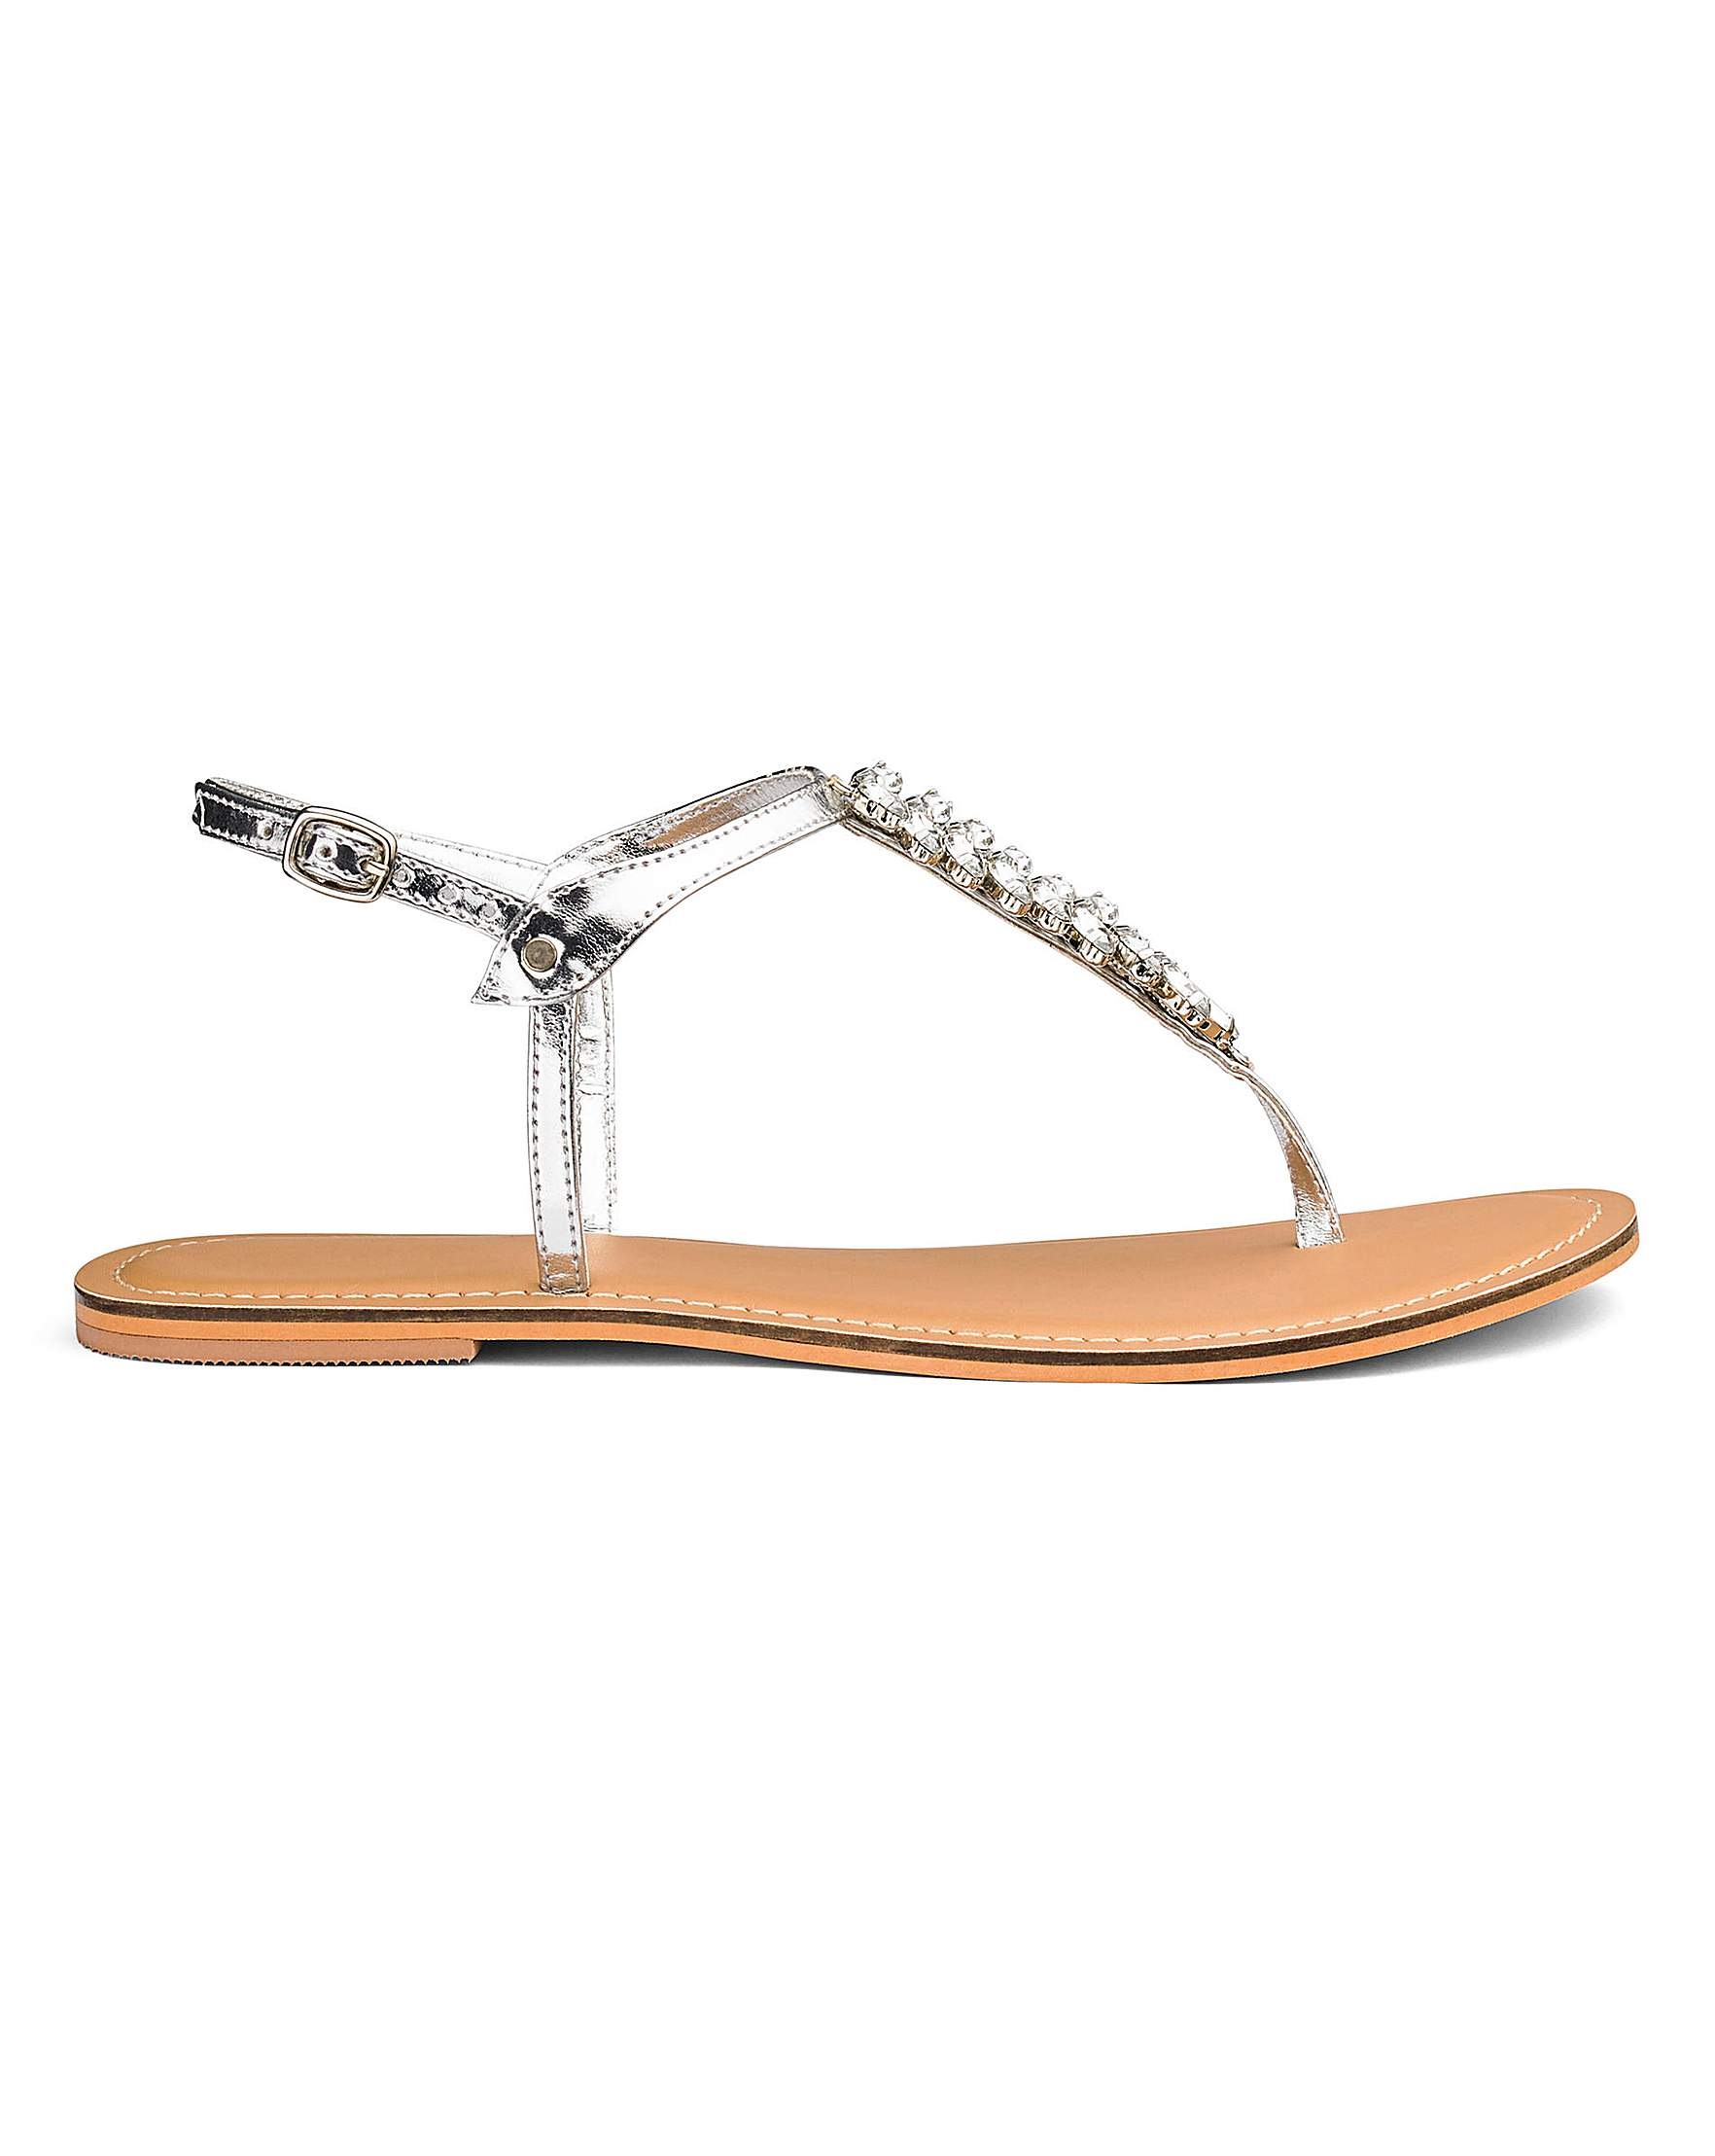 a492edda6f3a Gracie Diamante Sandal EEE Fit